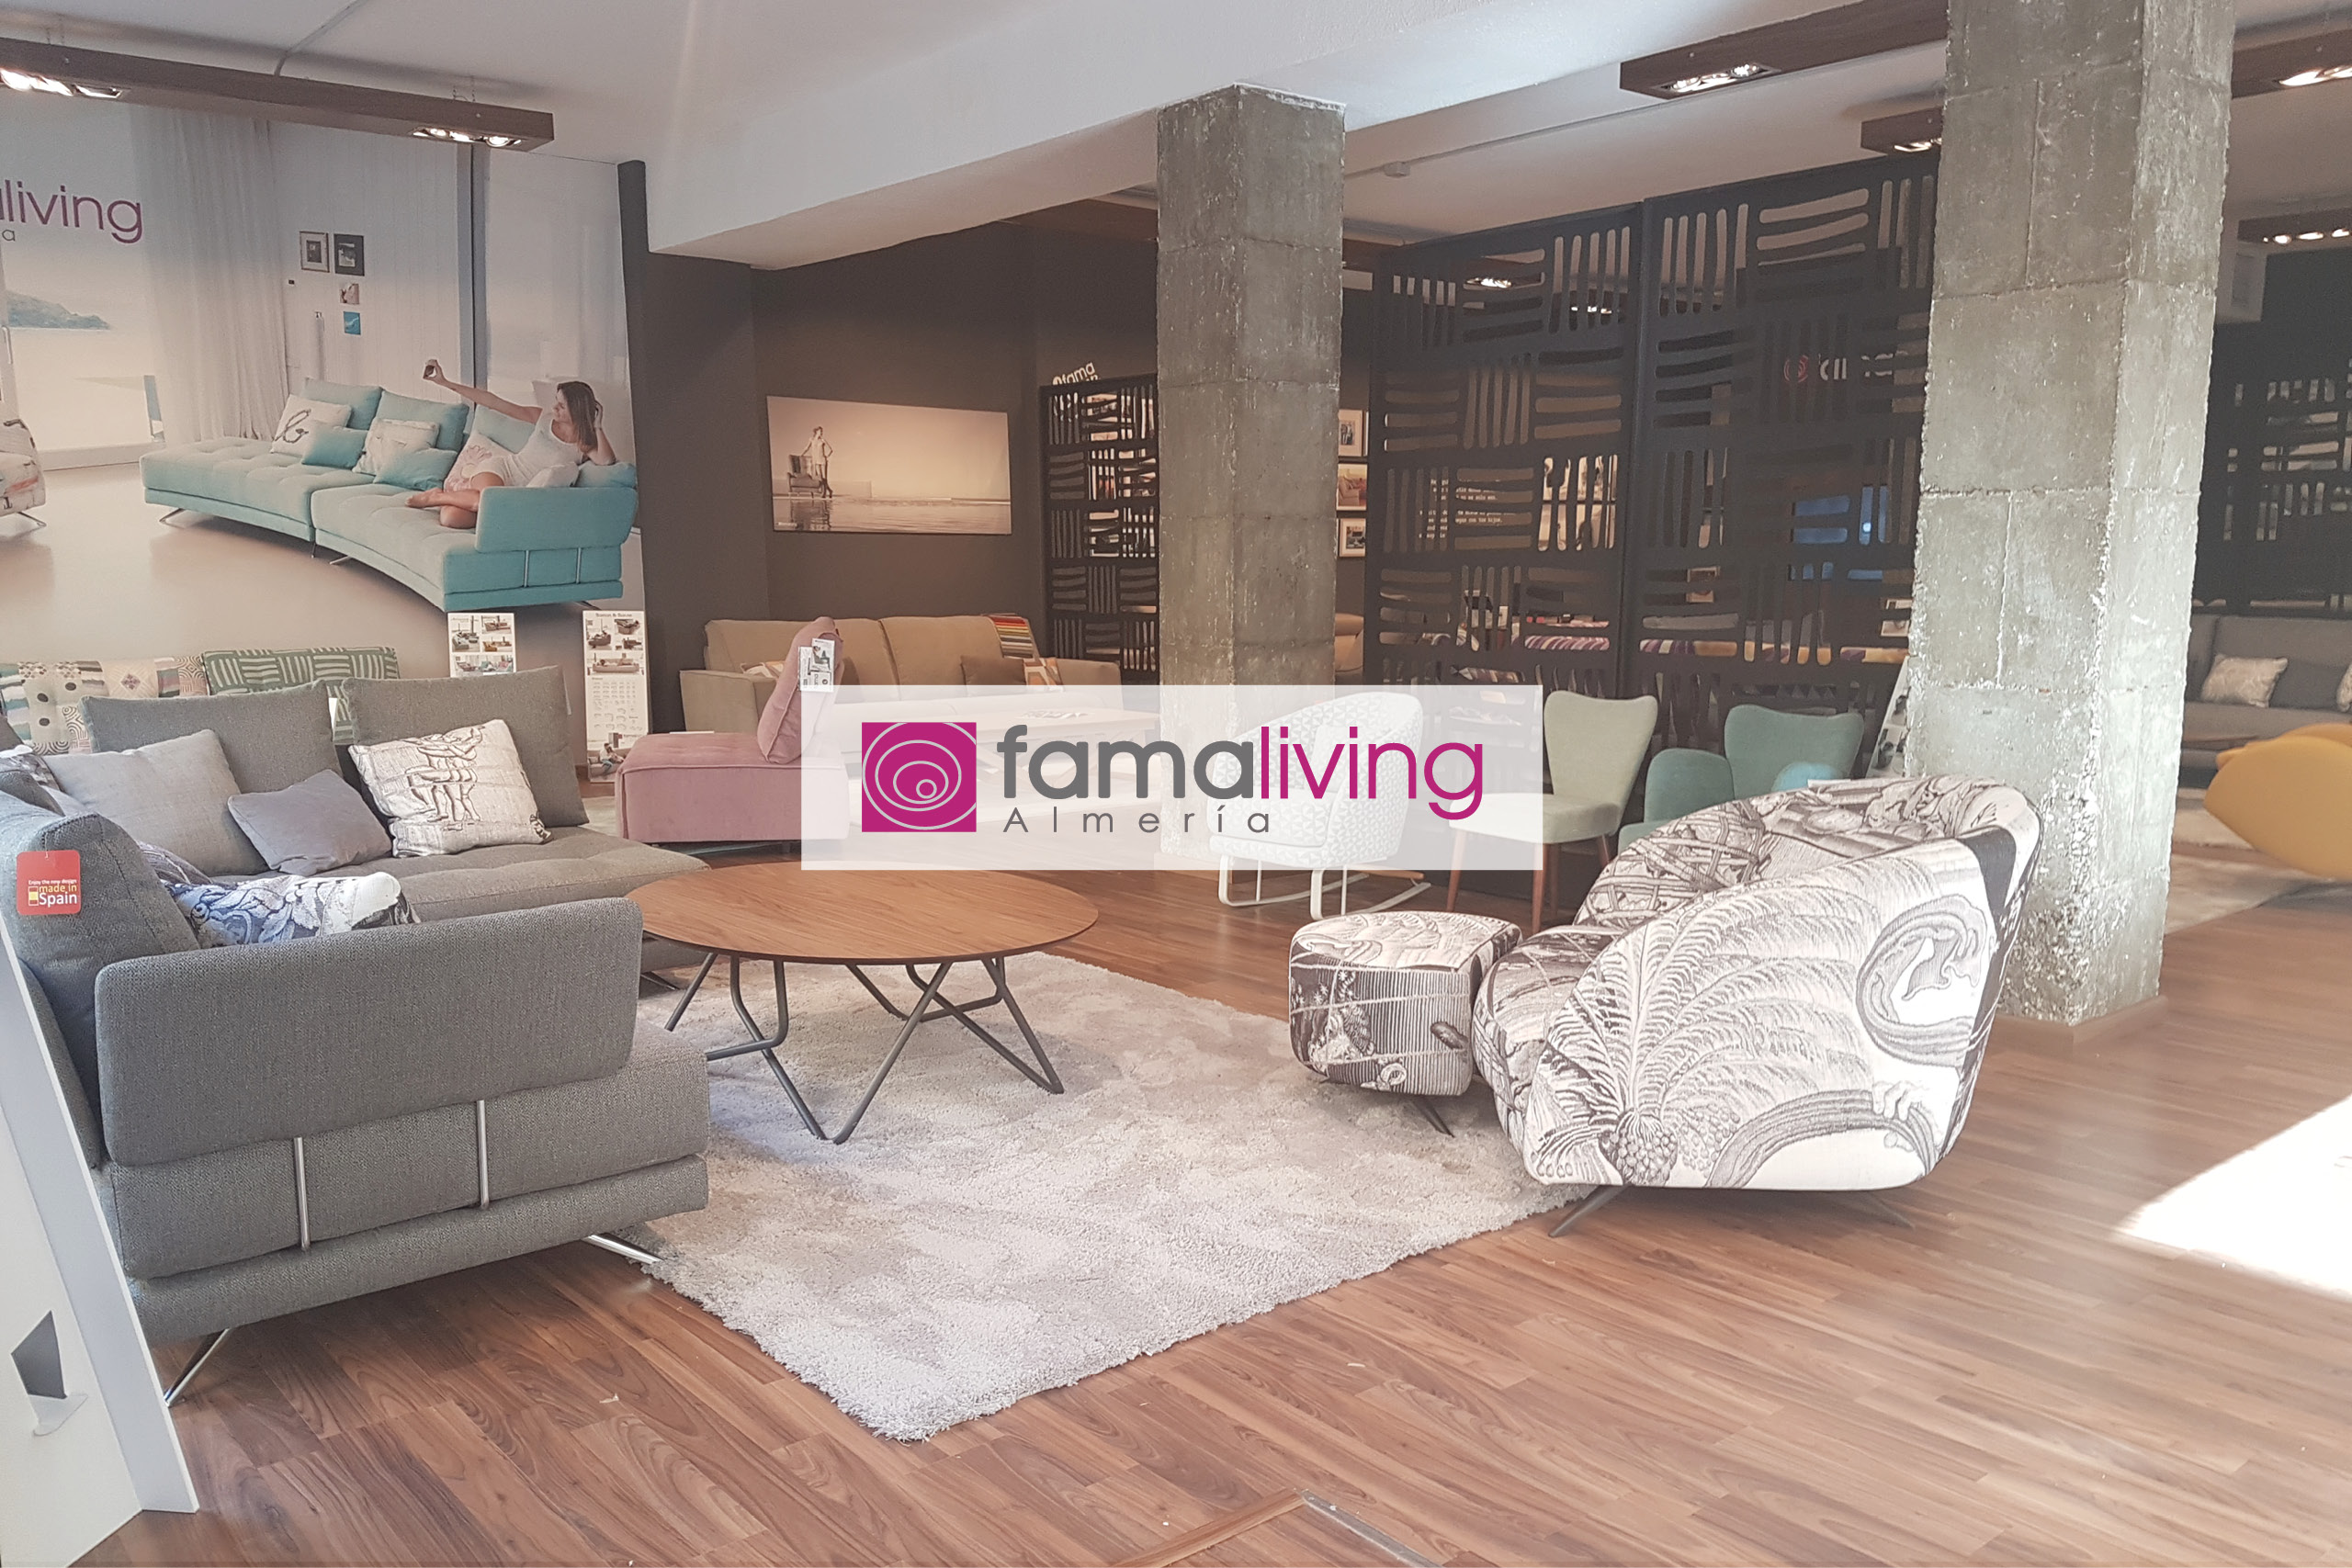 https://www.famaliving.com/almeria-en